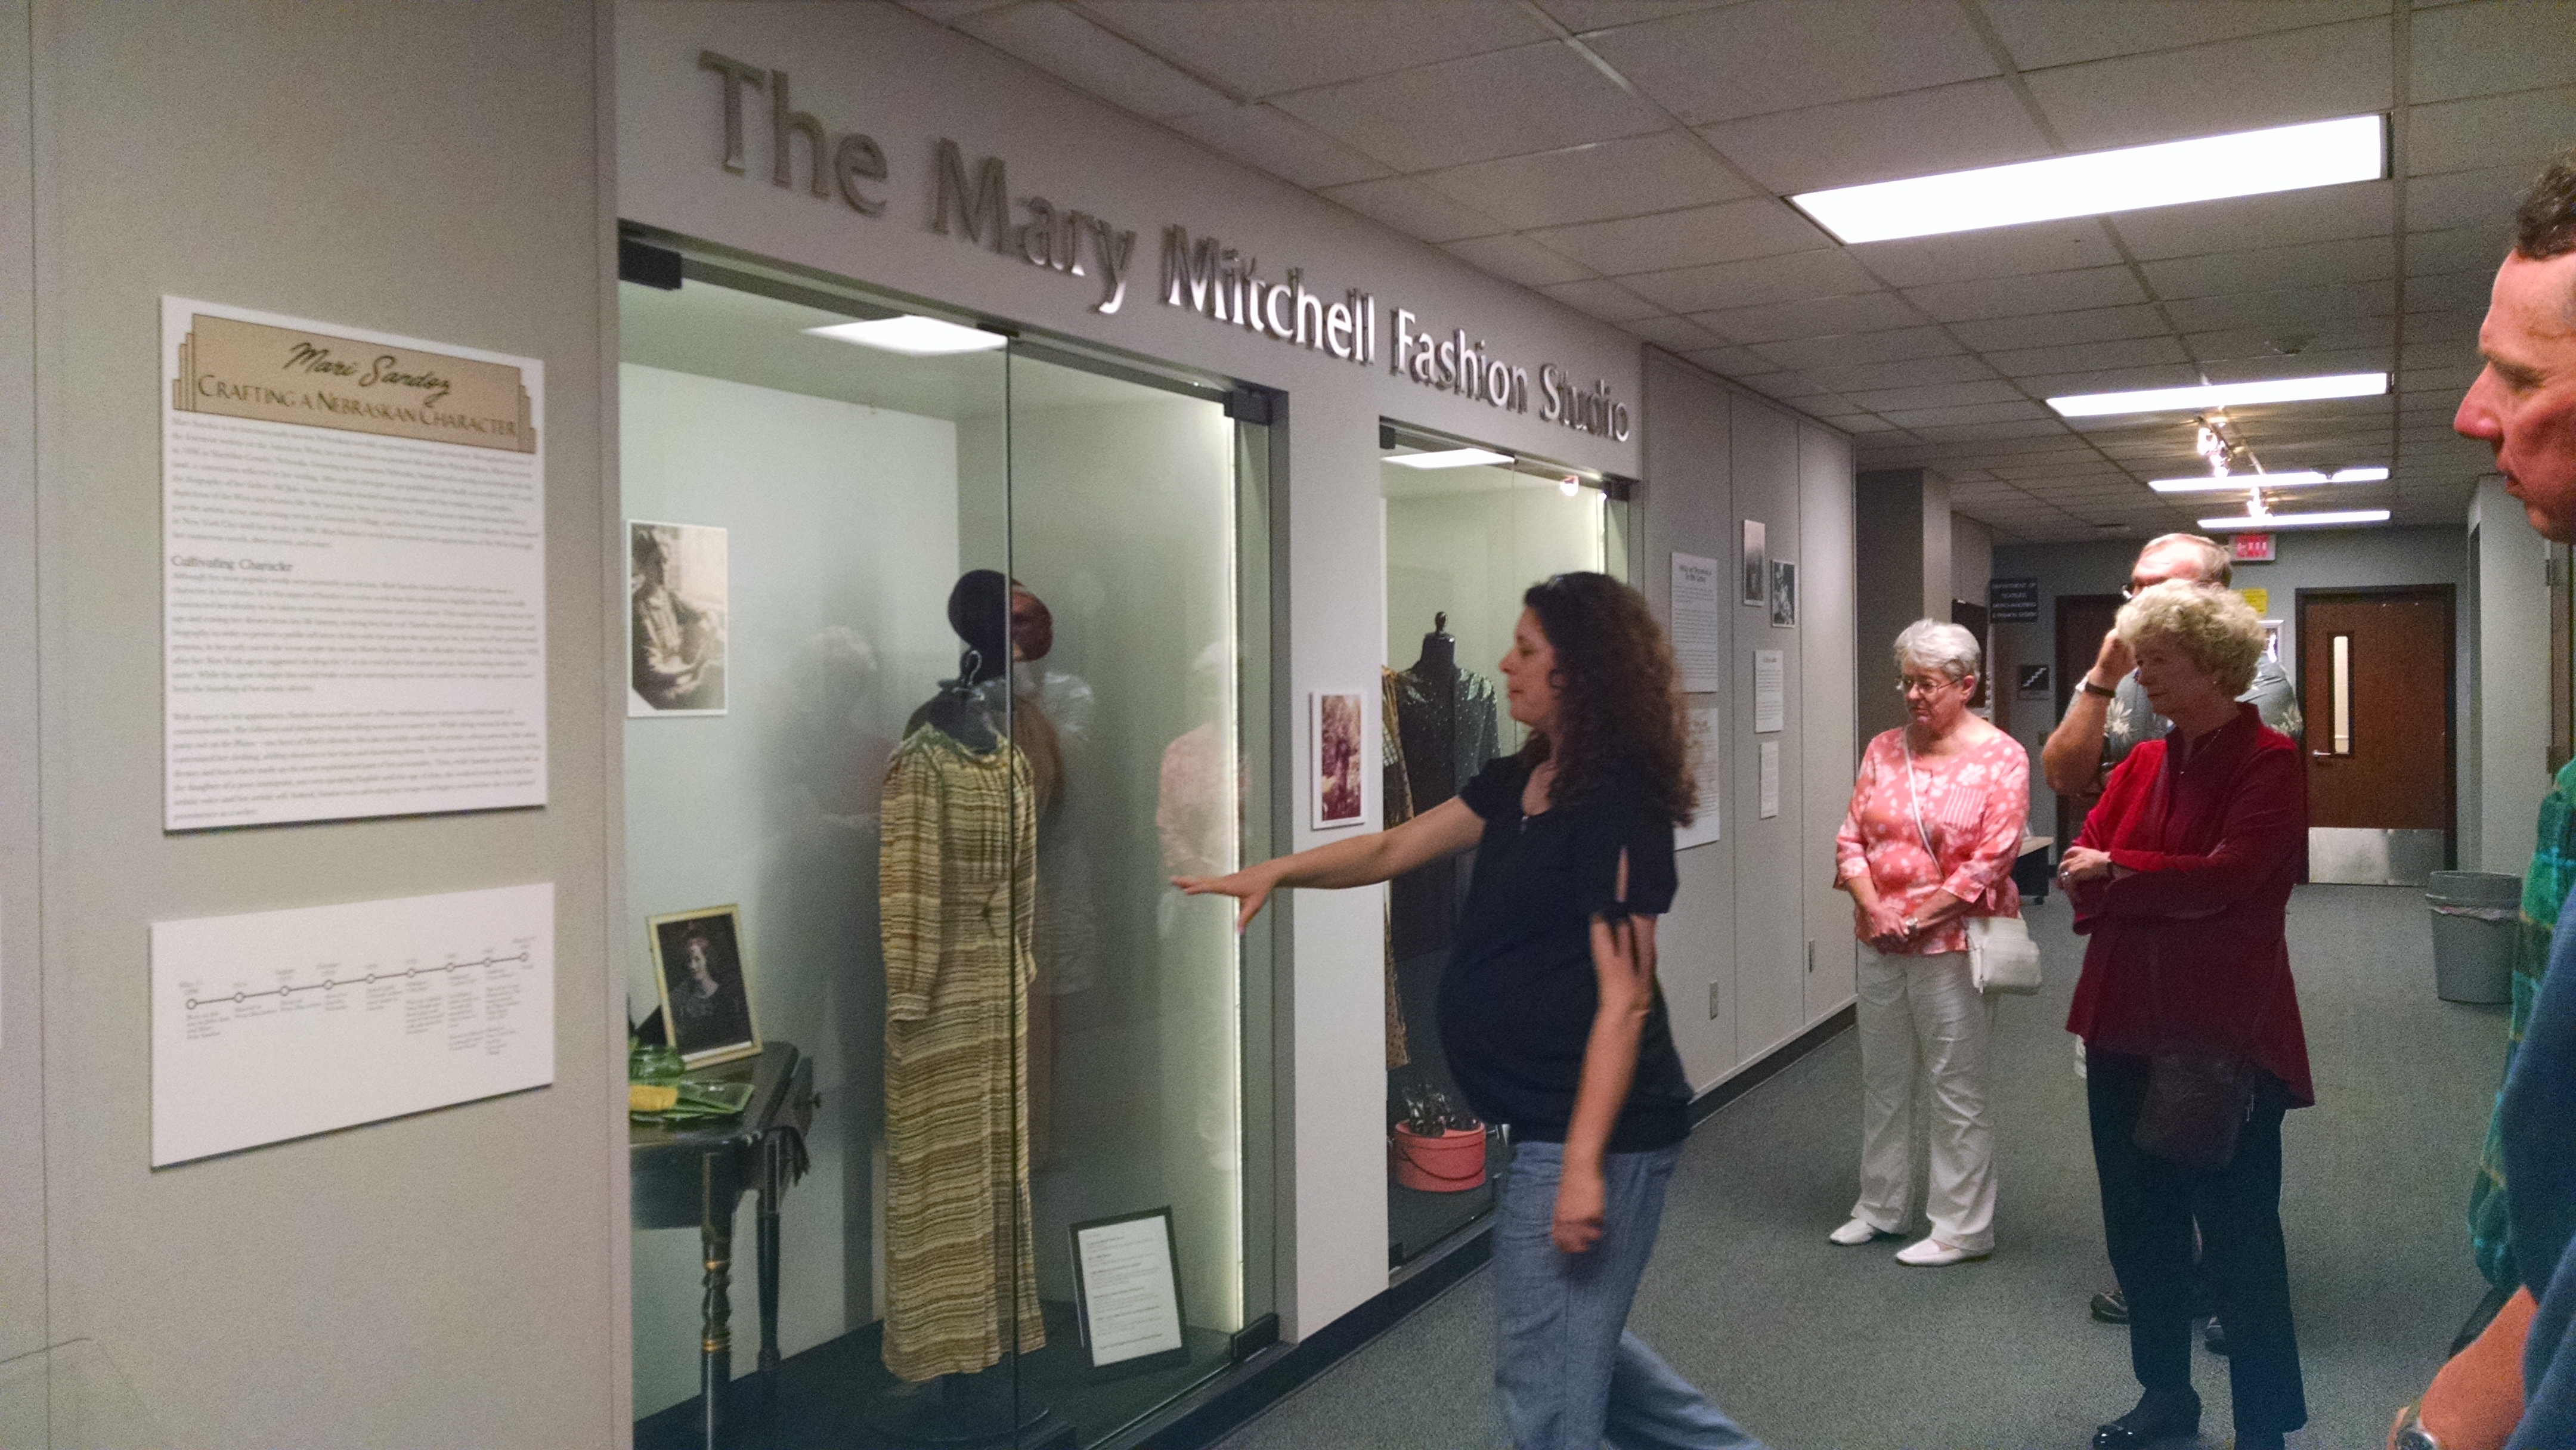 Sandoz Scholar Exhibit on East Campus